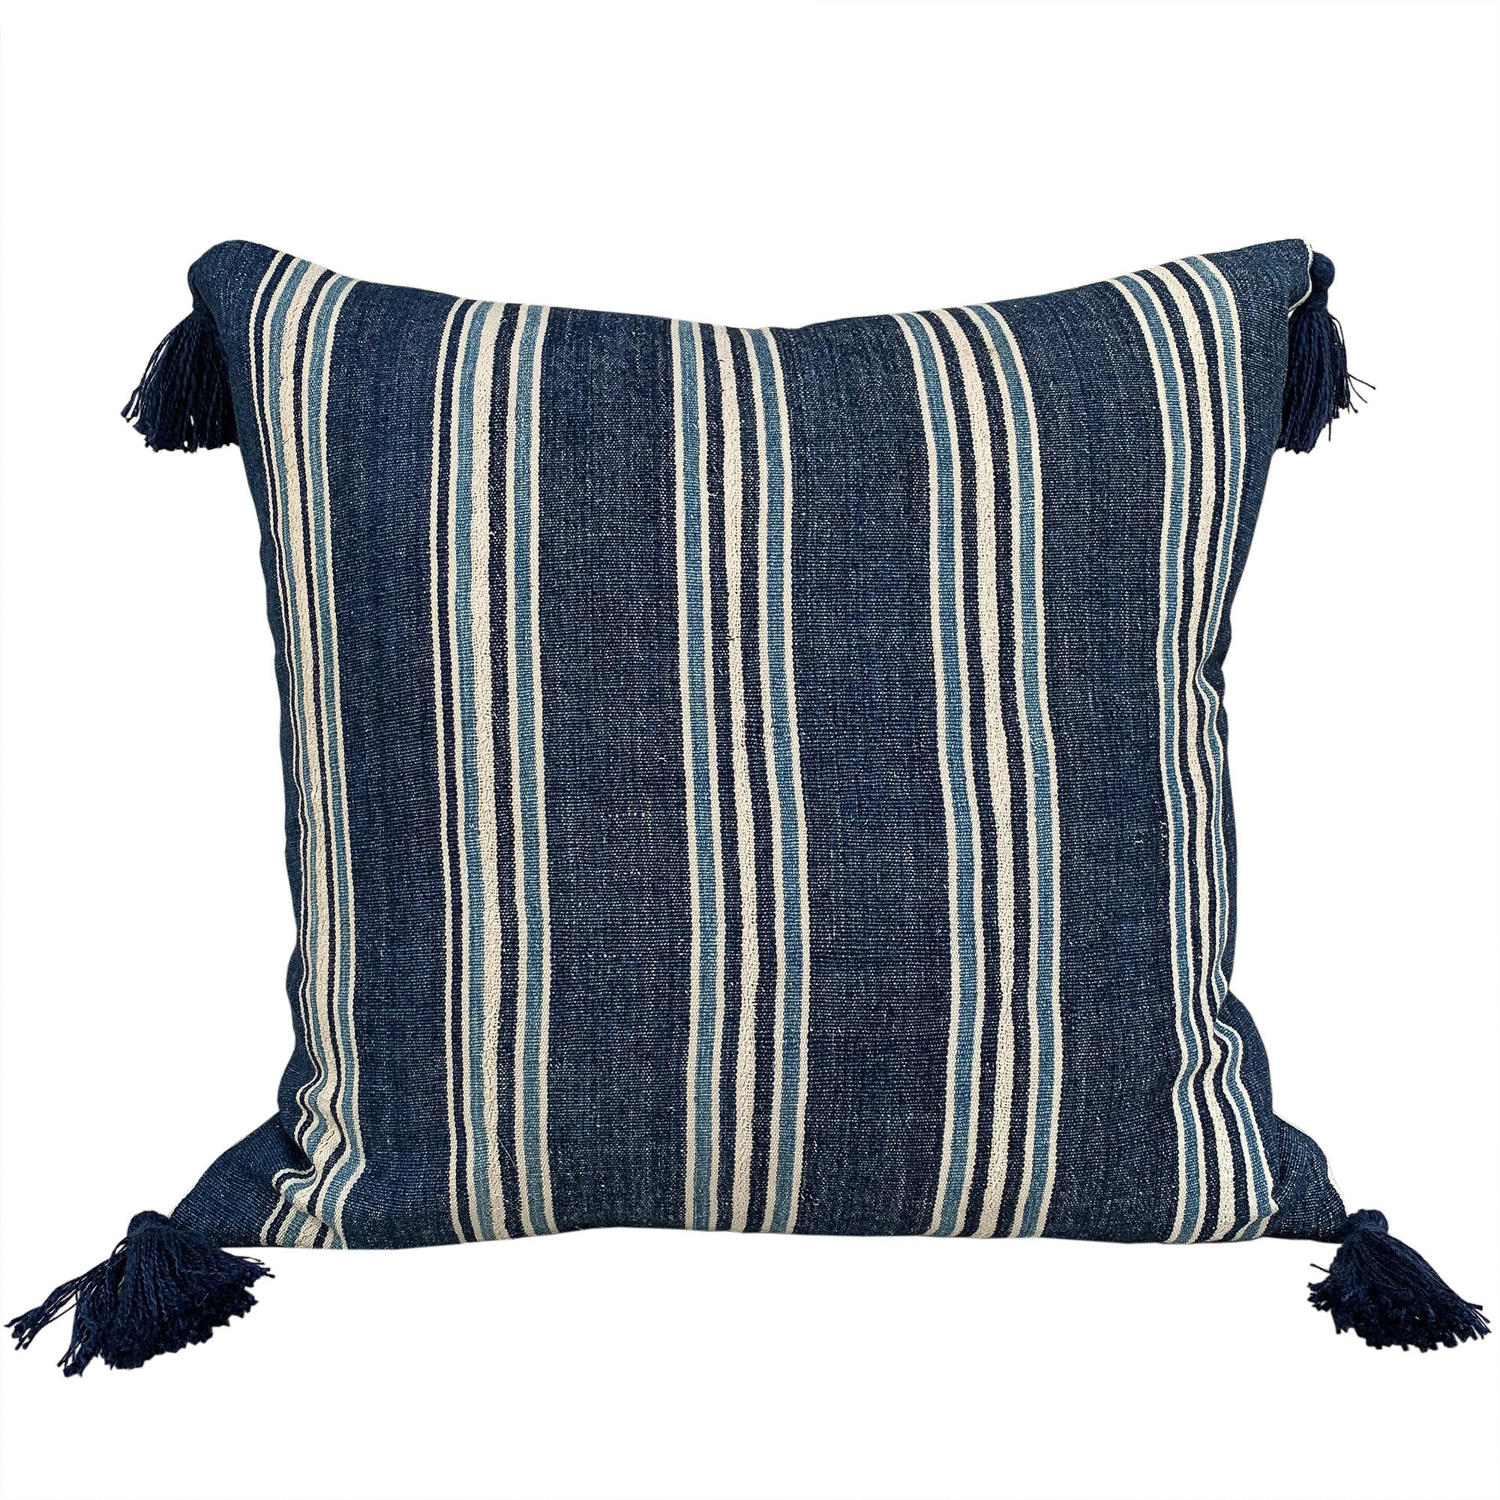 Ivory Coast cushions with tassels